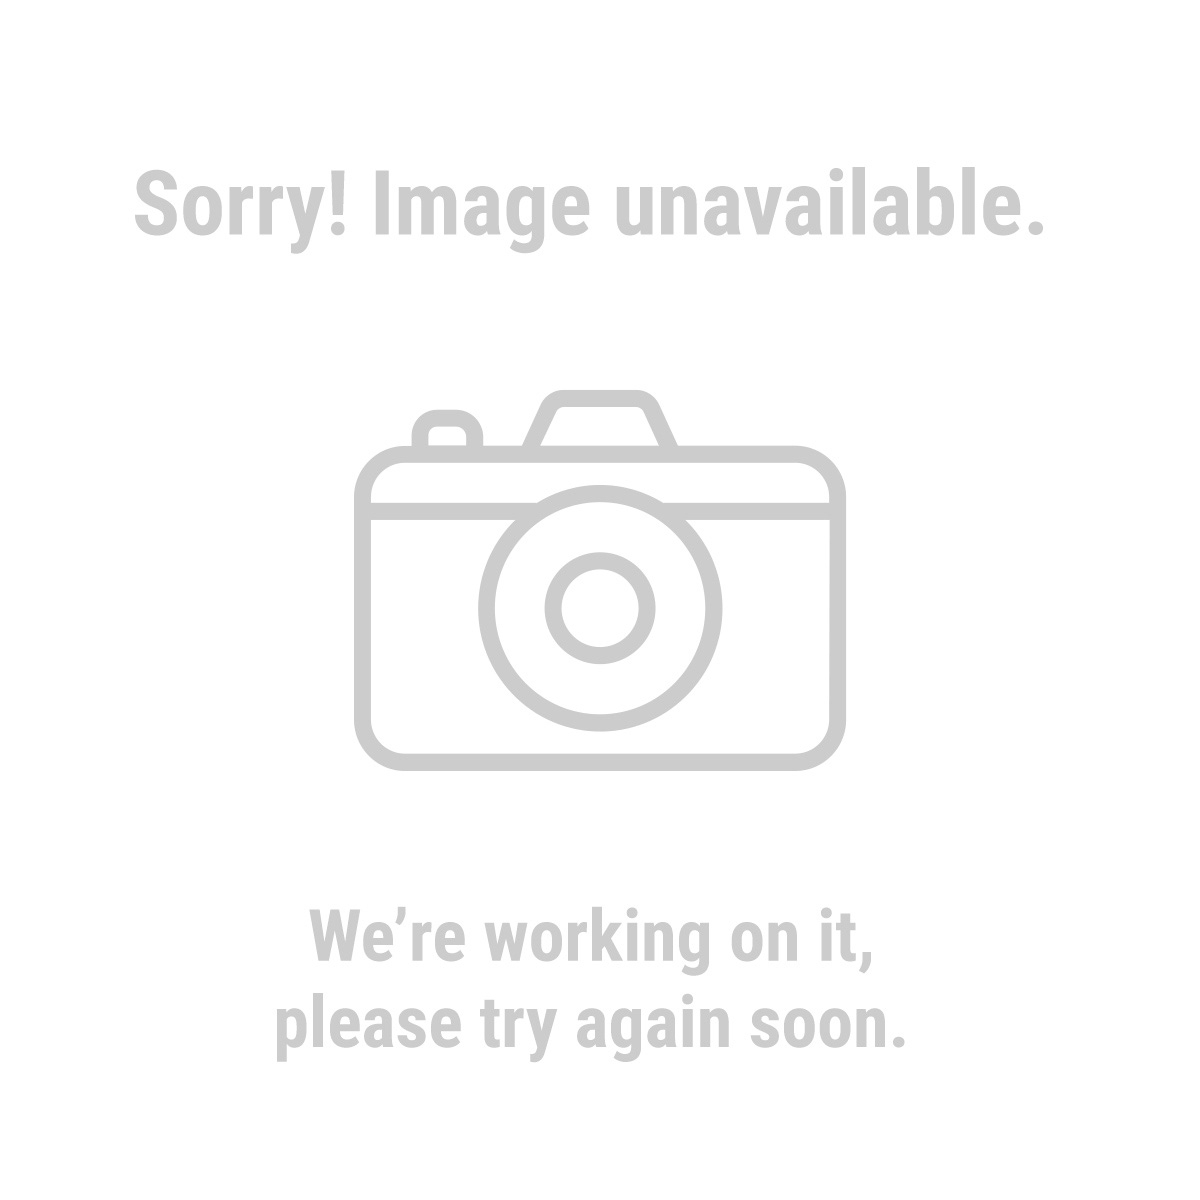 Haul-Master® 60496 Moving Dolly, 1000 Lb. Hardwood